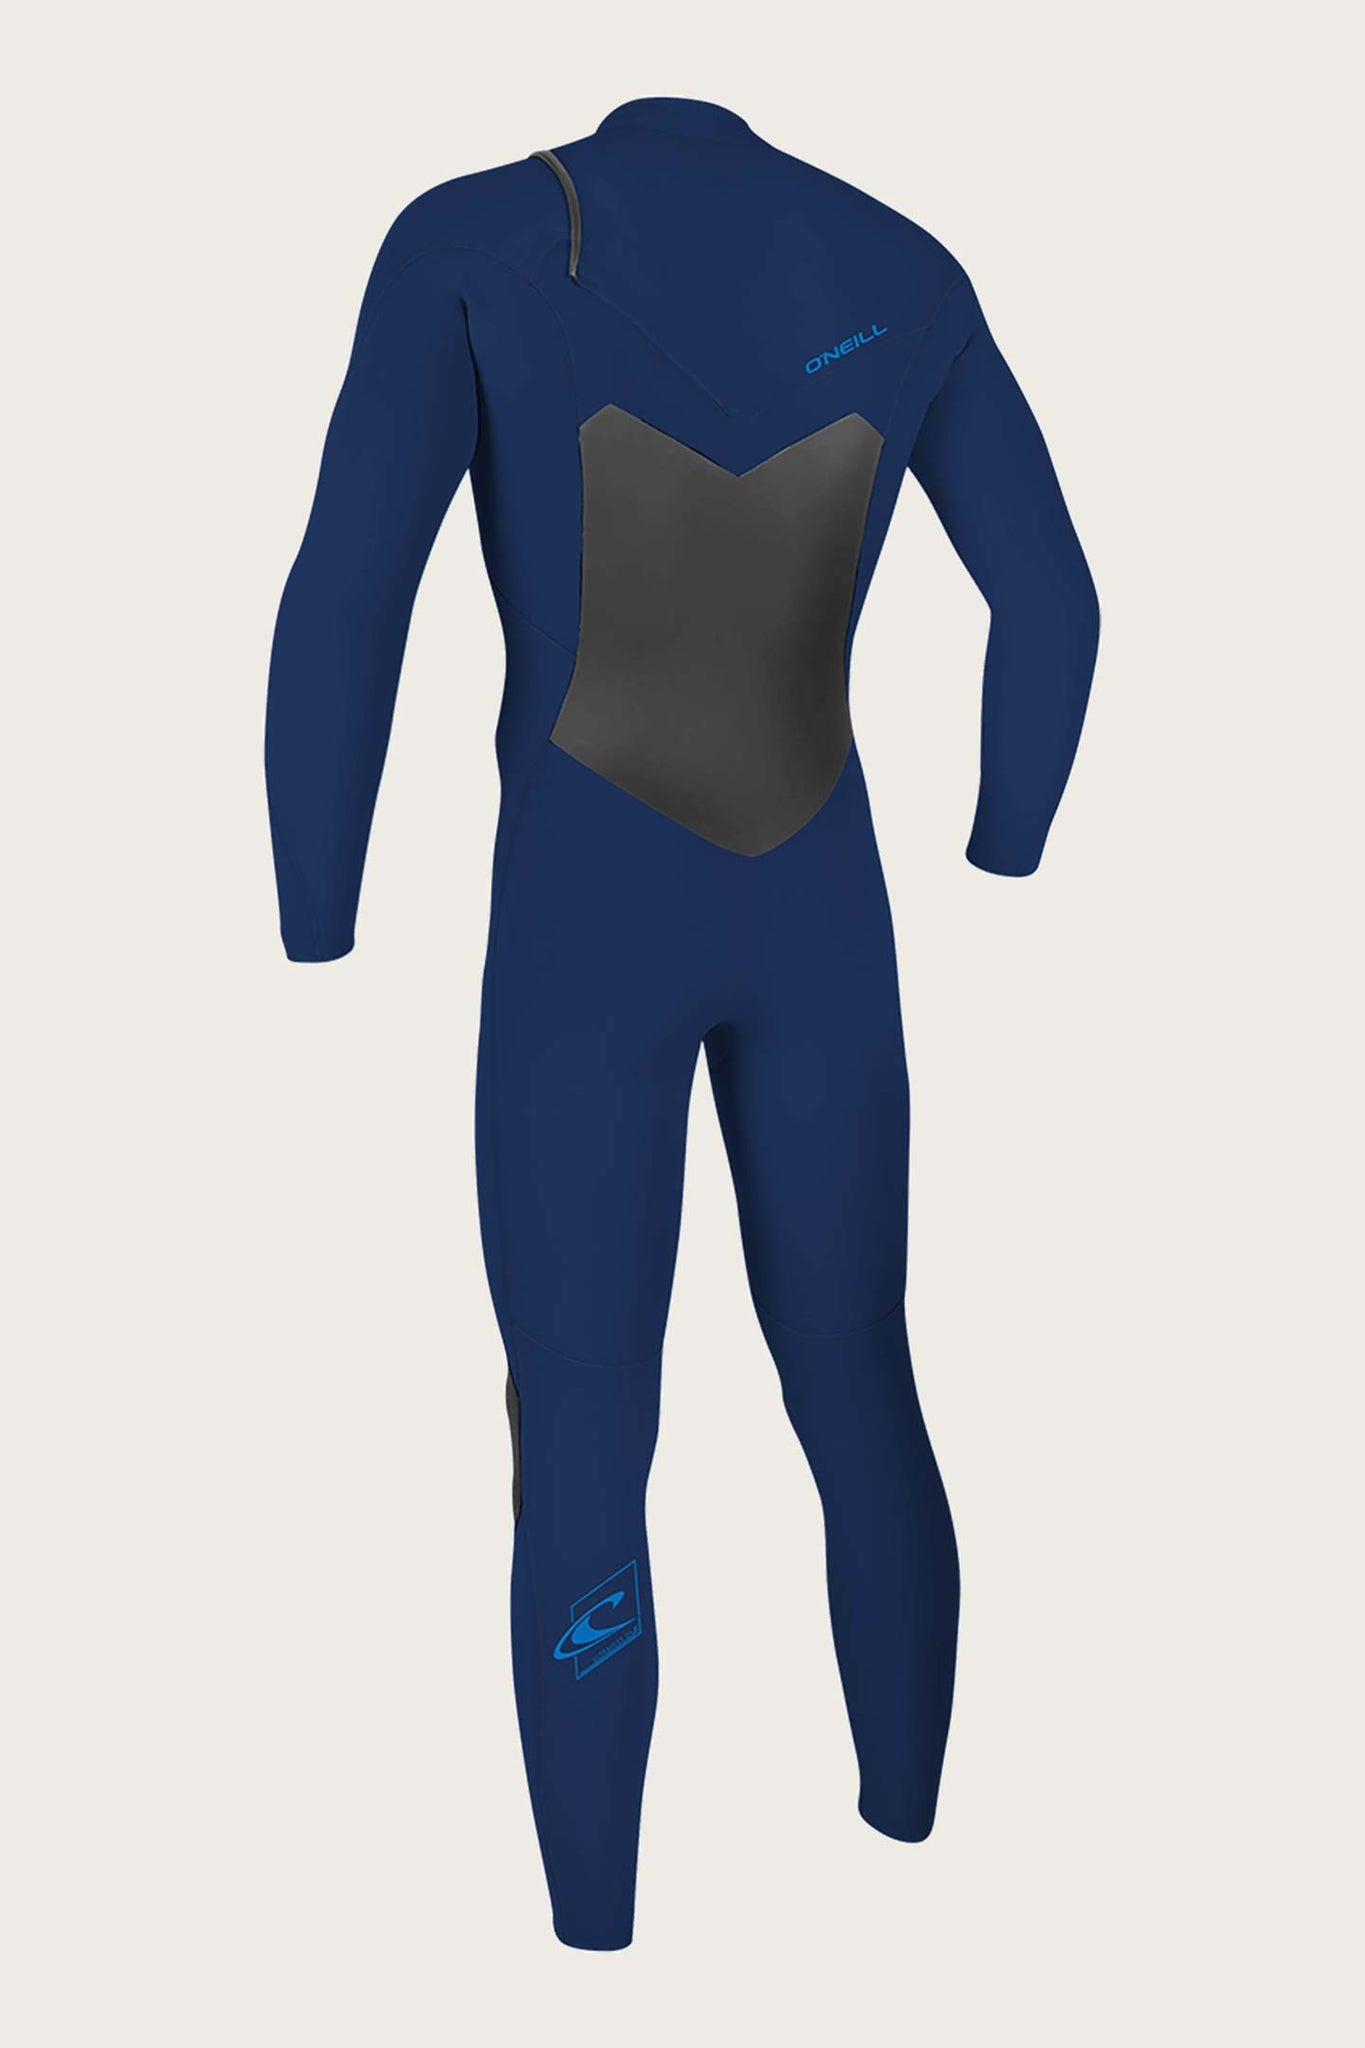 Epic 3/2Mm Chest Zip Full Wetsuit - Nvy/Nvy | O'Neill